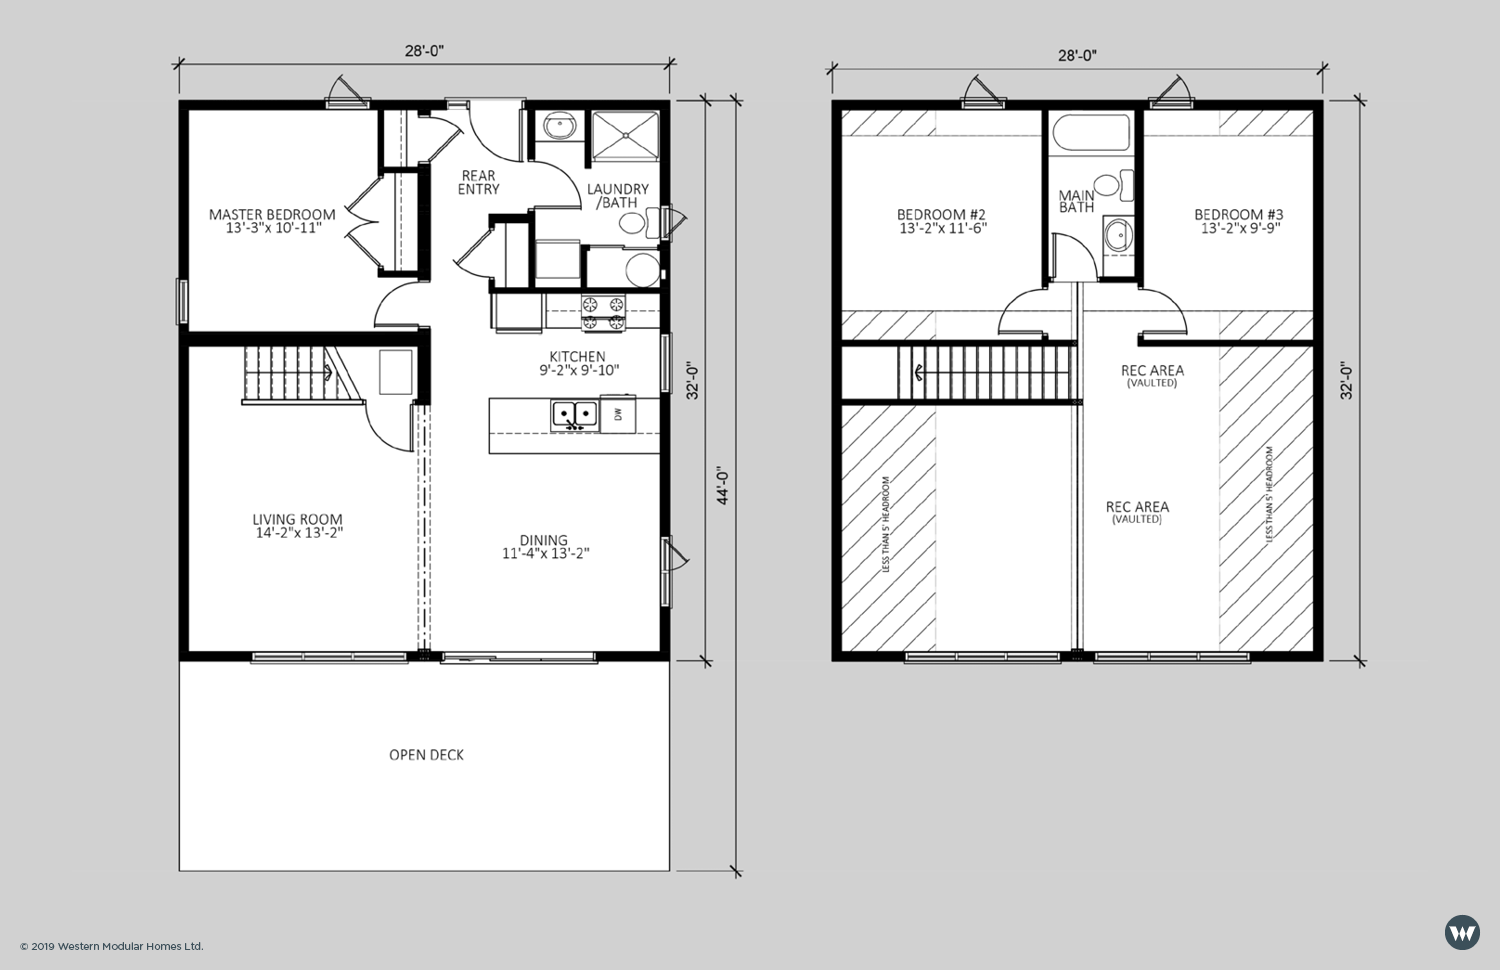 The Haven  1,563 sq ft (above 5' headroom)  Proposed Loft Layout